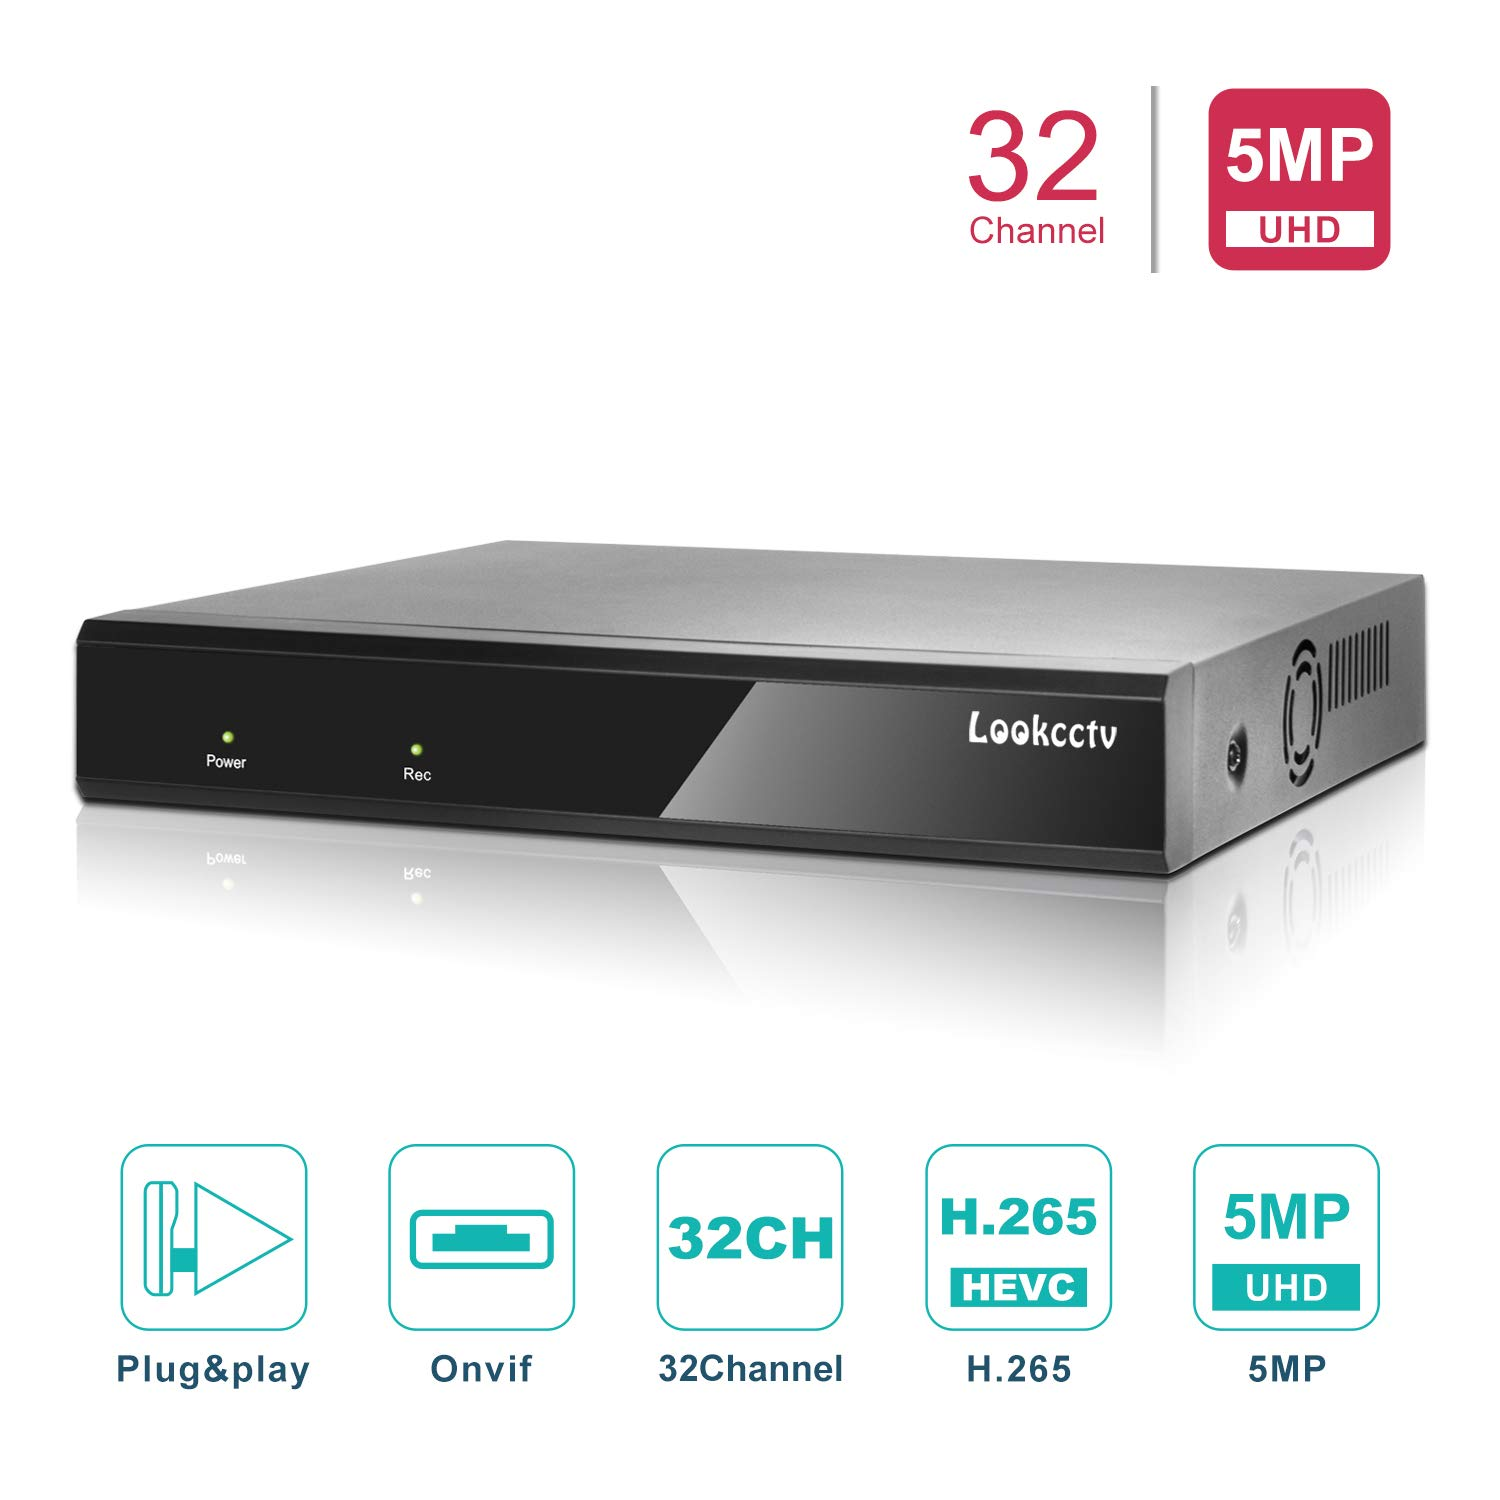 lookcctv 5MP 32CH H.265 Security NVR Network Video Recorder, 32-Channel, Supports 5MP/4MP/1080P IP Camera (NO HDD&Cameras),Remote Smartphone Access/P2P Cloud/Motion Detection Email Alert by lookcctv